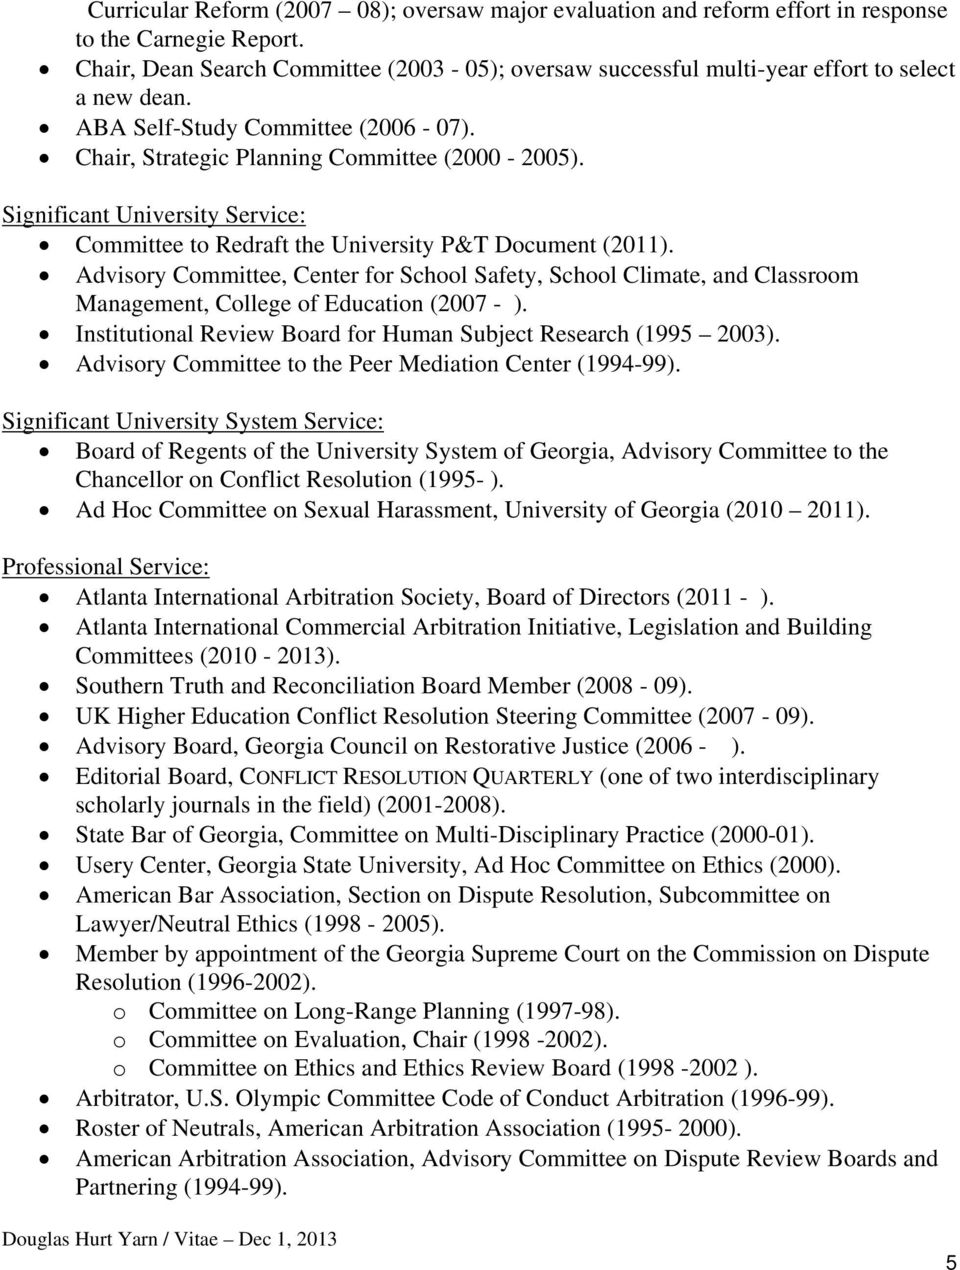 Significant University Service: Committee to Redraft the University P&T Document (2011).